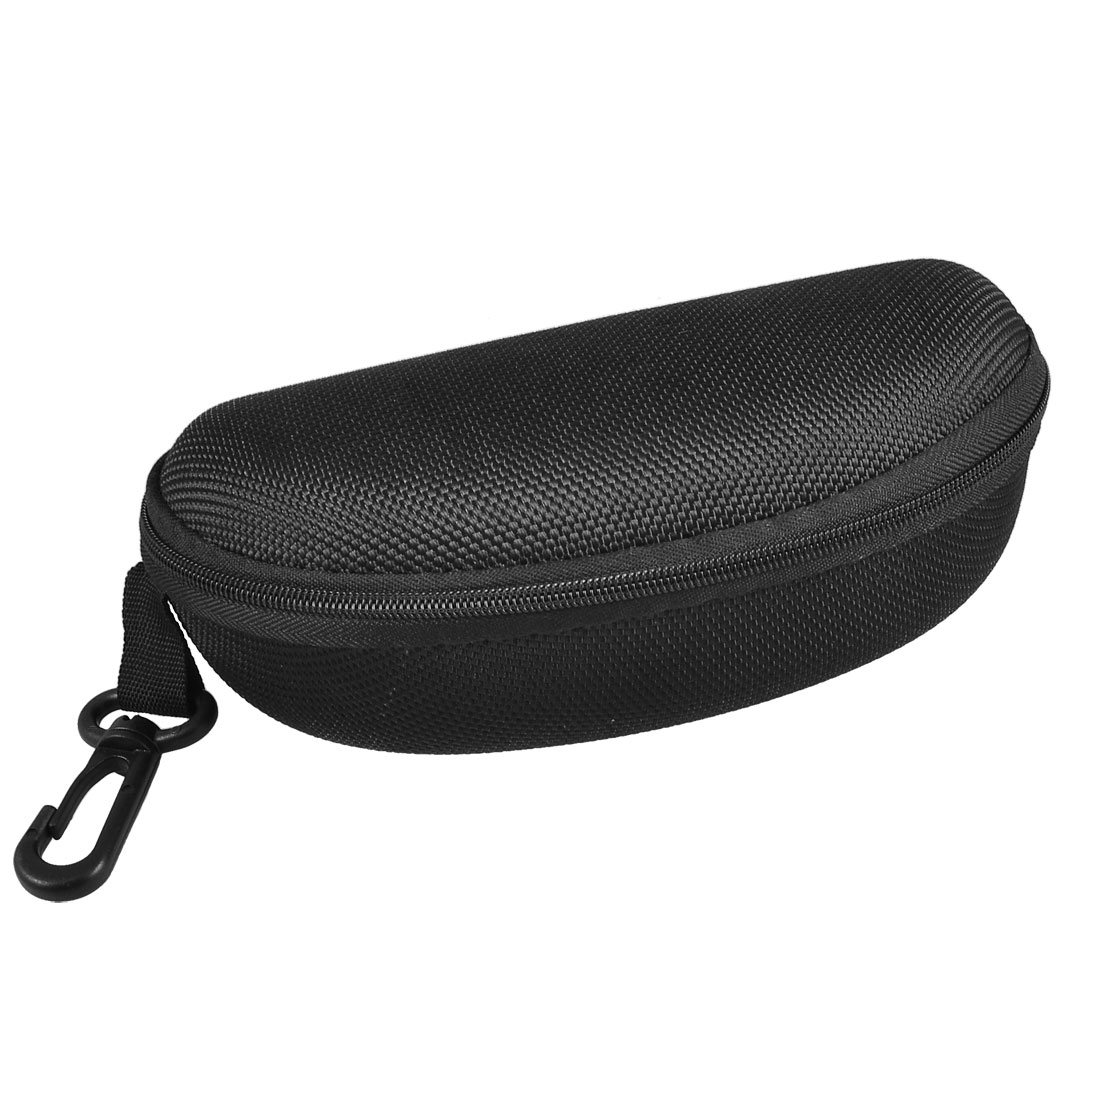 Black Plastic Carabiner Fleece Lining Nylon Eyeglasses Glasses Case Box Holder